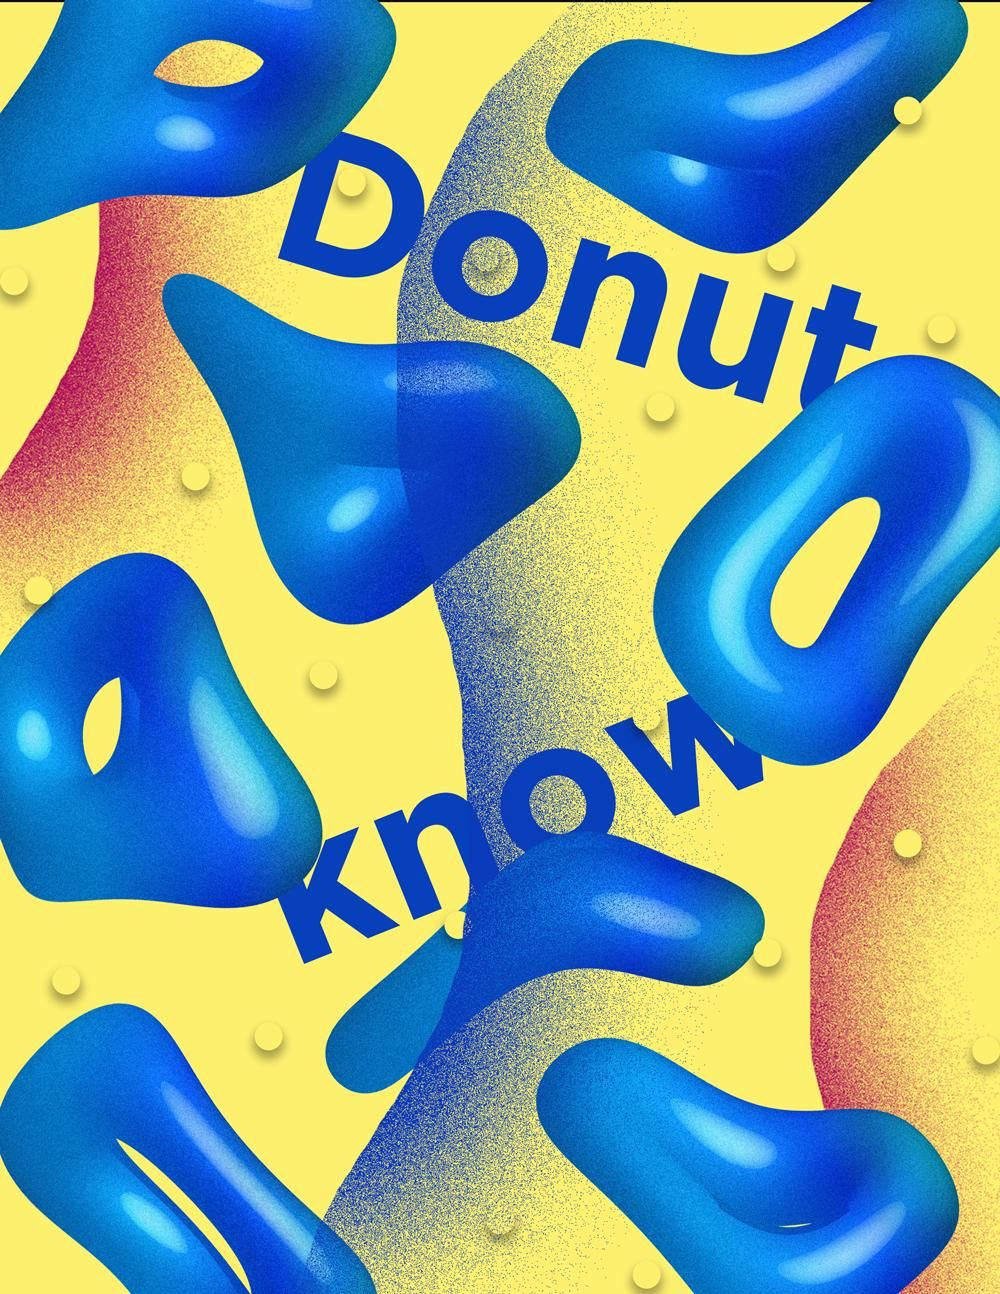 Donut Know - image 1 - student project